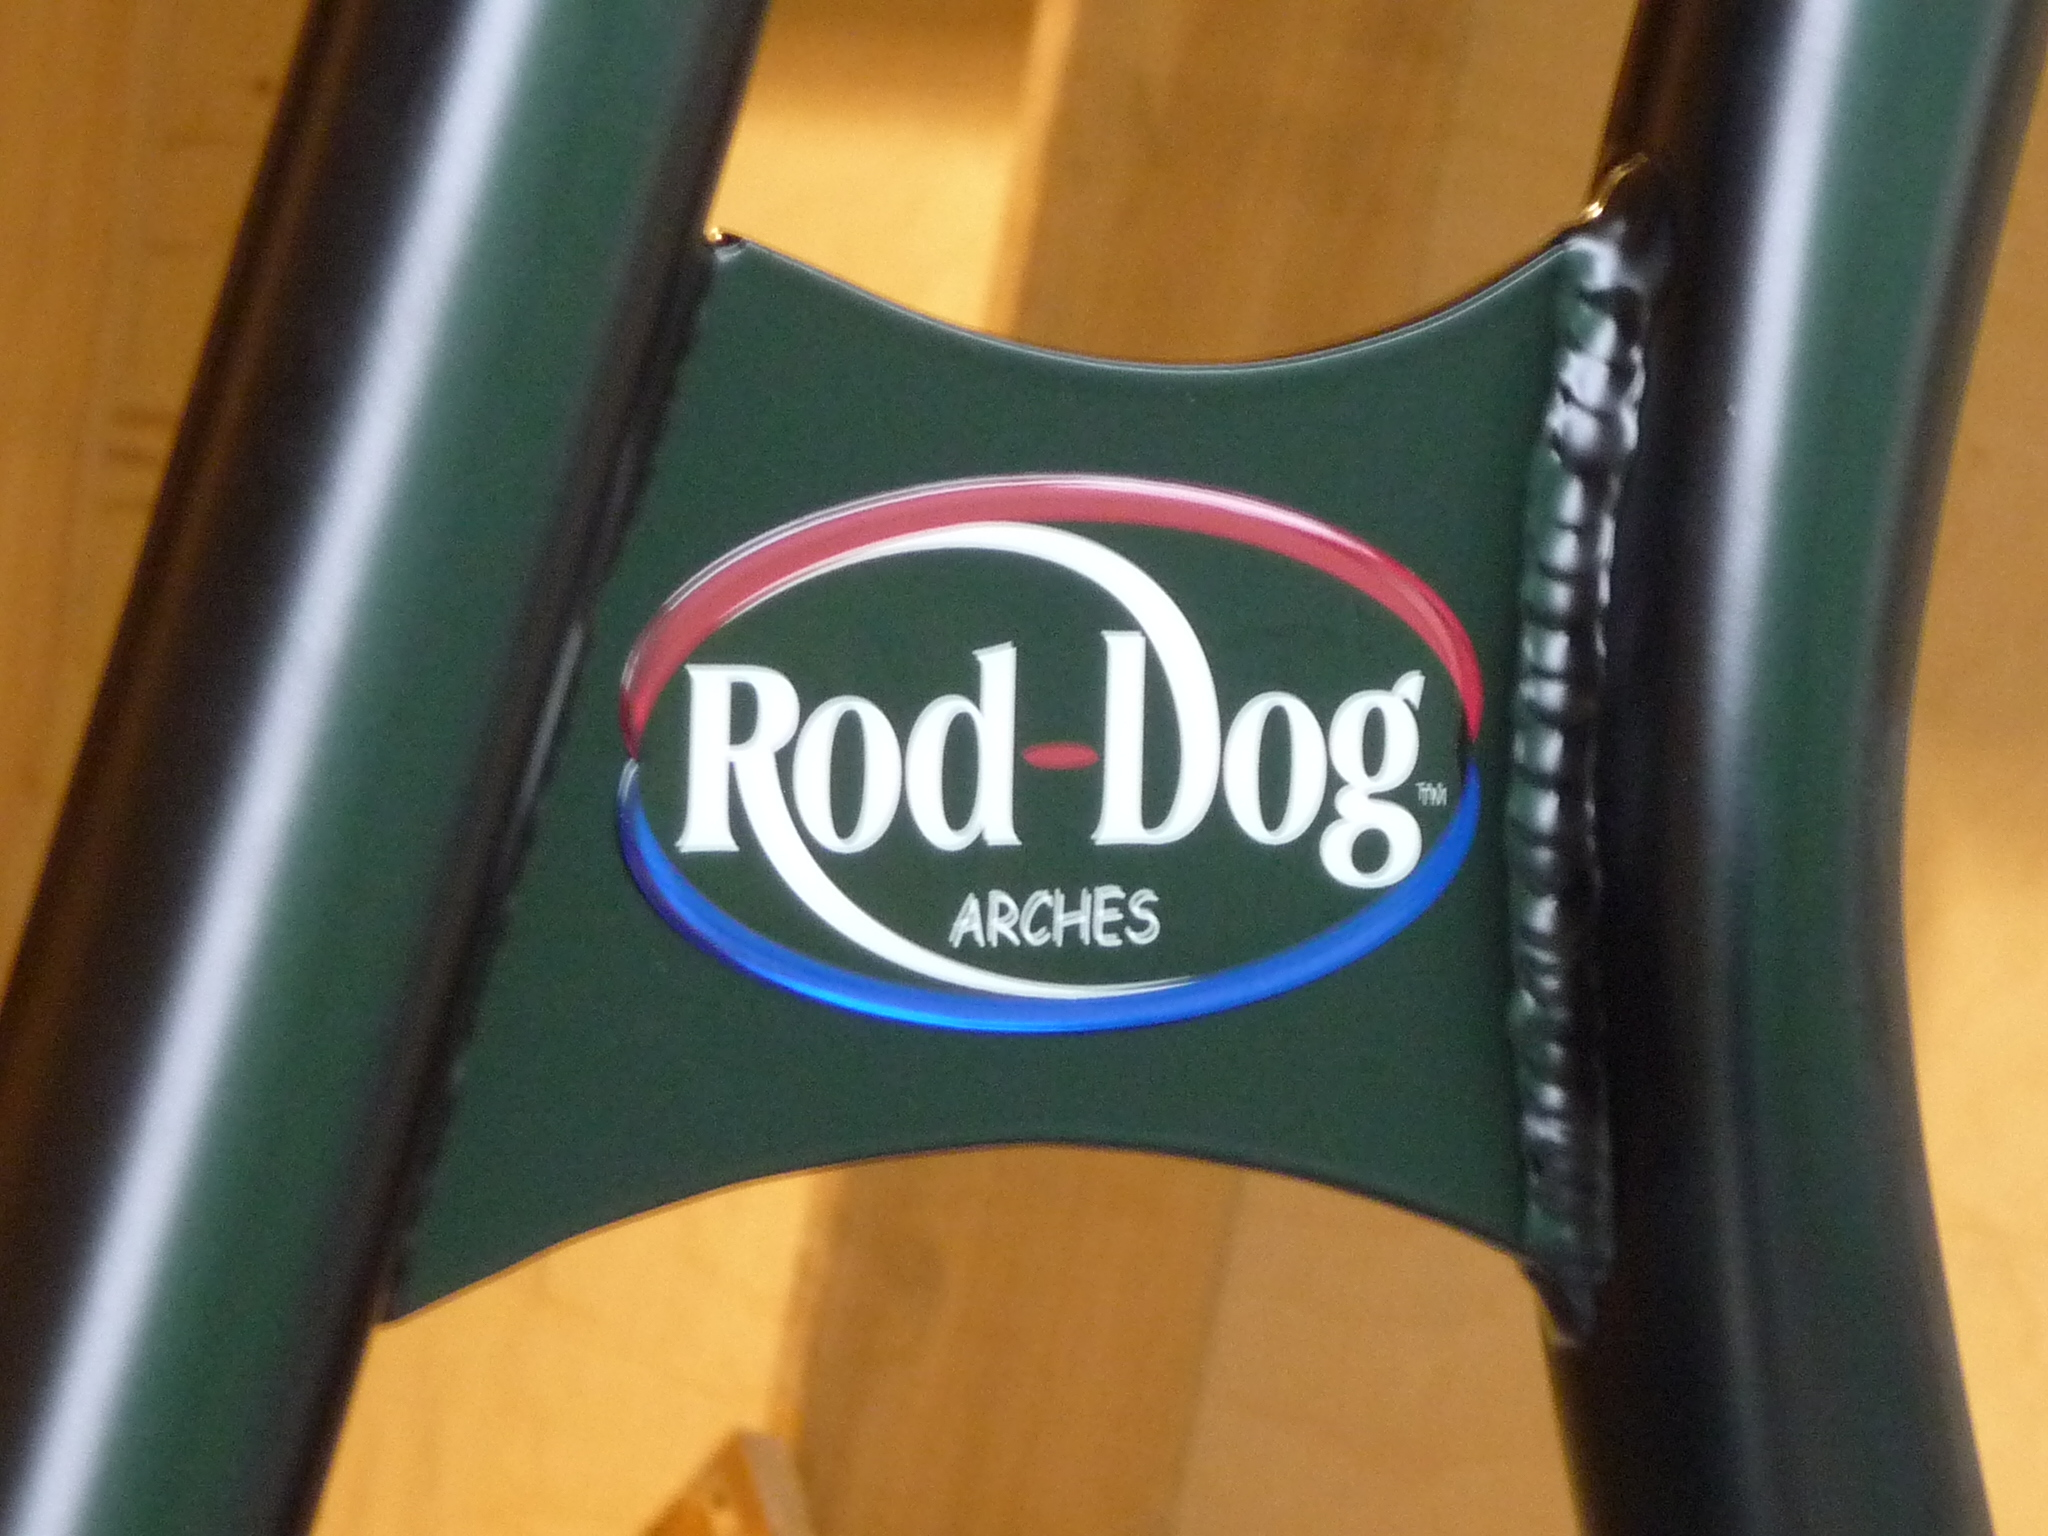 Rod Dog Arches – Gallery 2 – Photo 3